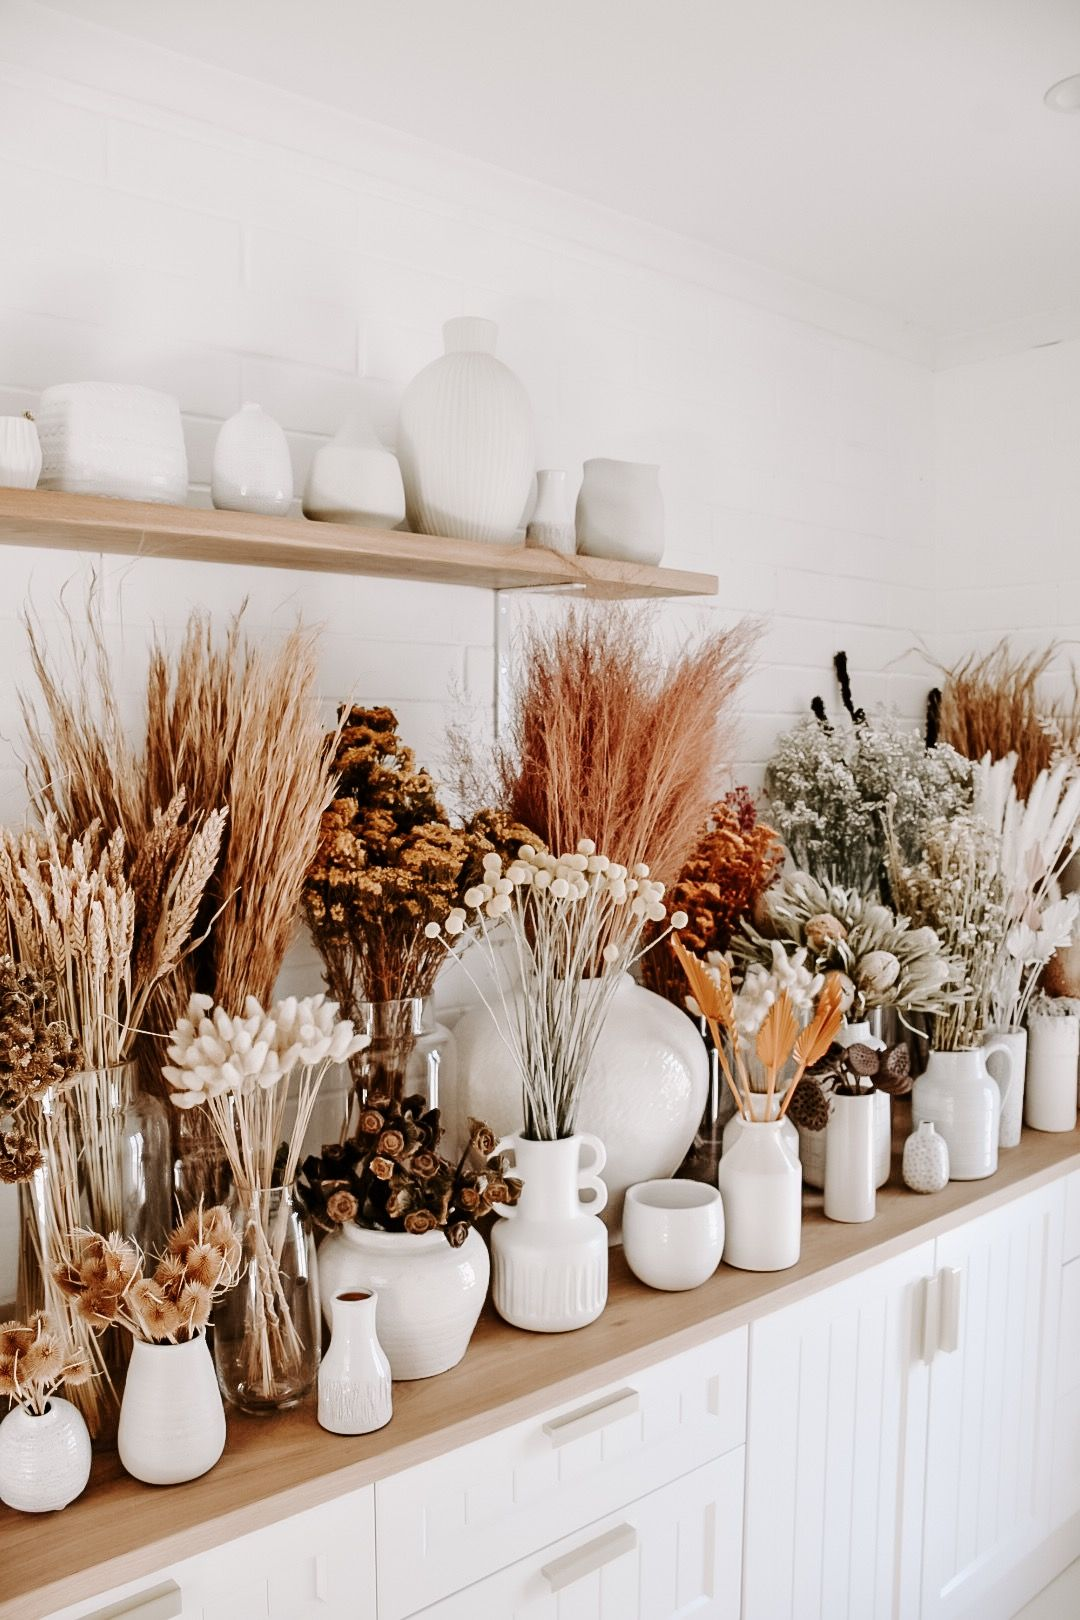 Our dried flower bar has been restocked and currently features dried whiskey grass, banksias, bunny tails, pink love grass, pampas grass, wheat, daisies, lotus pods and gum nuts. Visit us in store or view a selection via our website #driedflowers #flowers #driedflowerbar #natives #flowerdreams #flowergoals